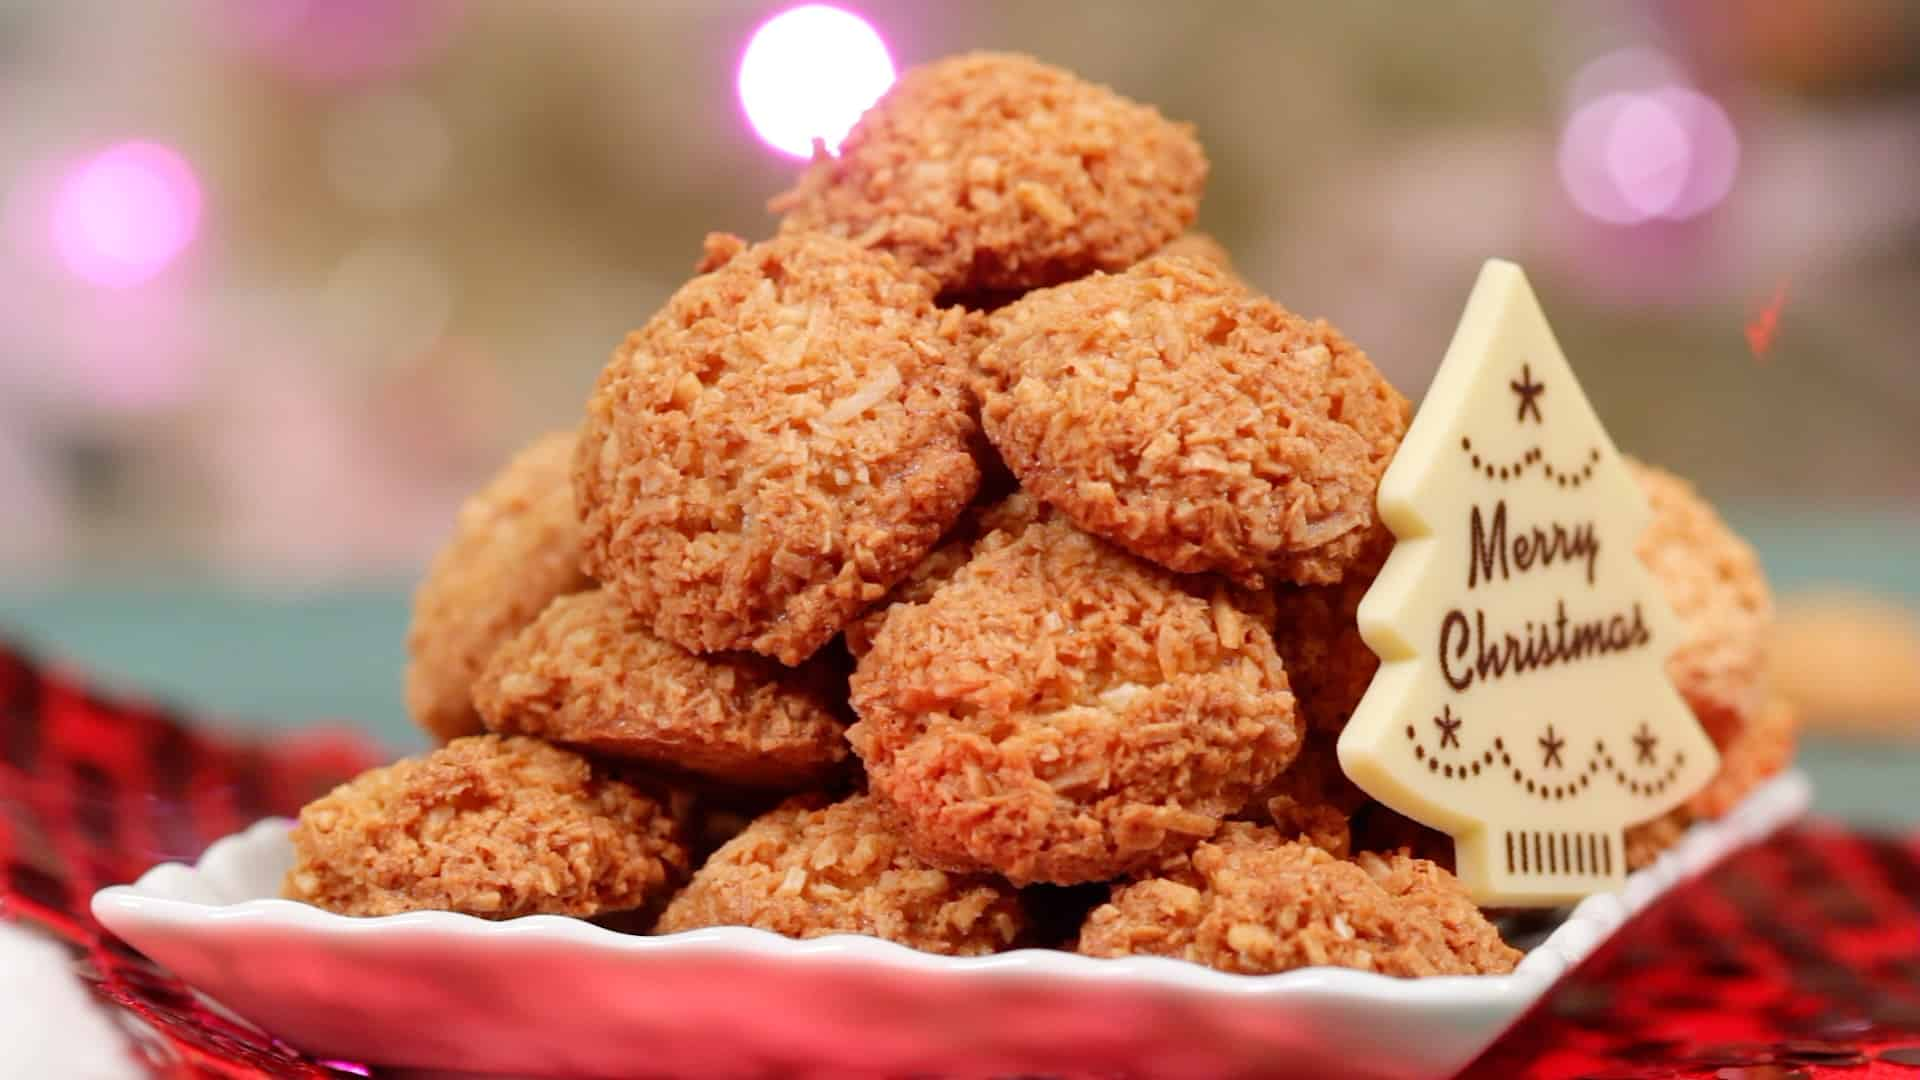 Coconut Macaroons Recipe (Crispy Christmas Cookies with Coconut | Easy Biscuits)